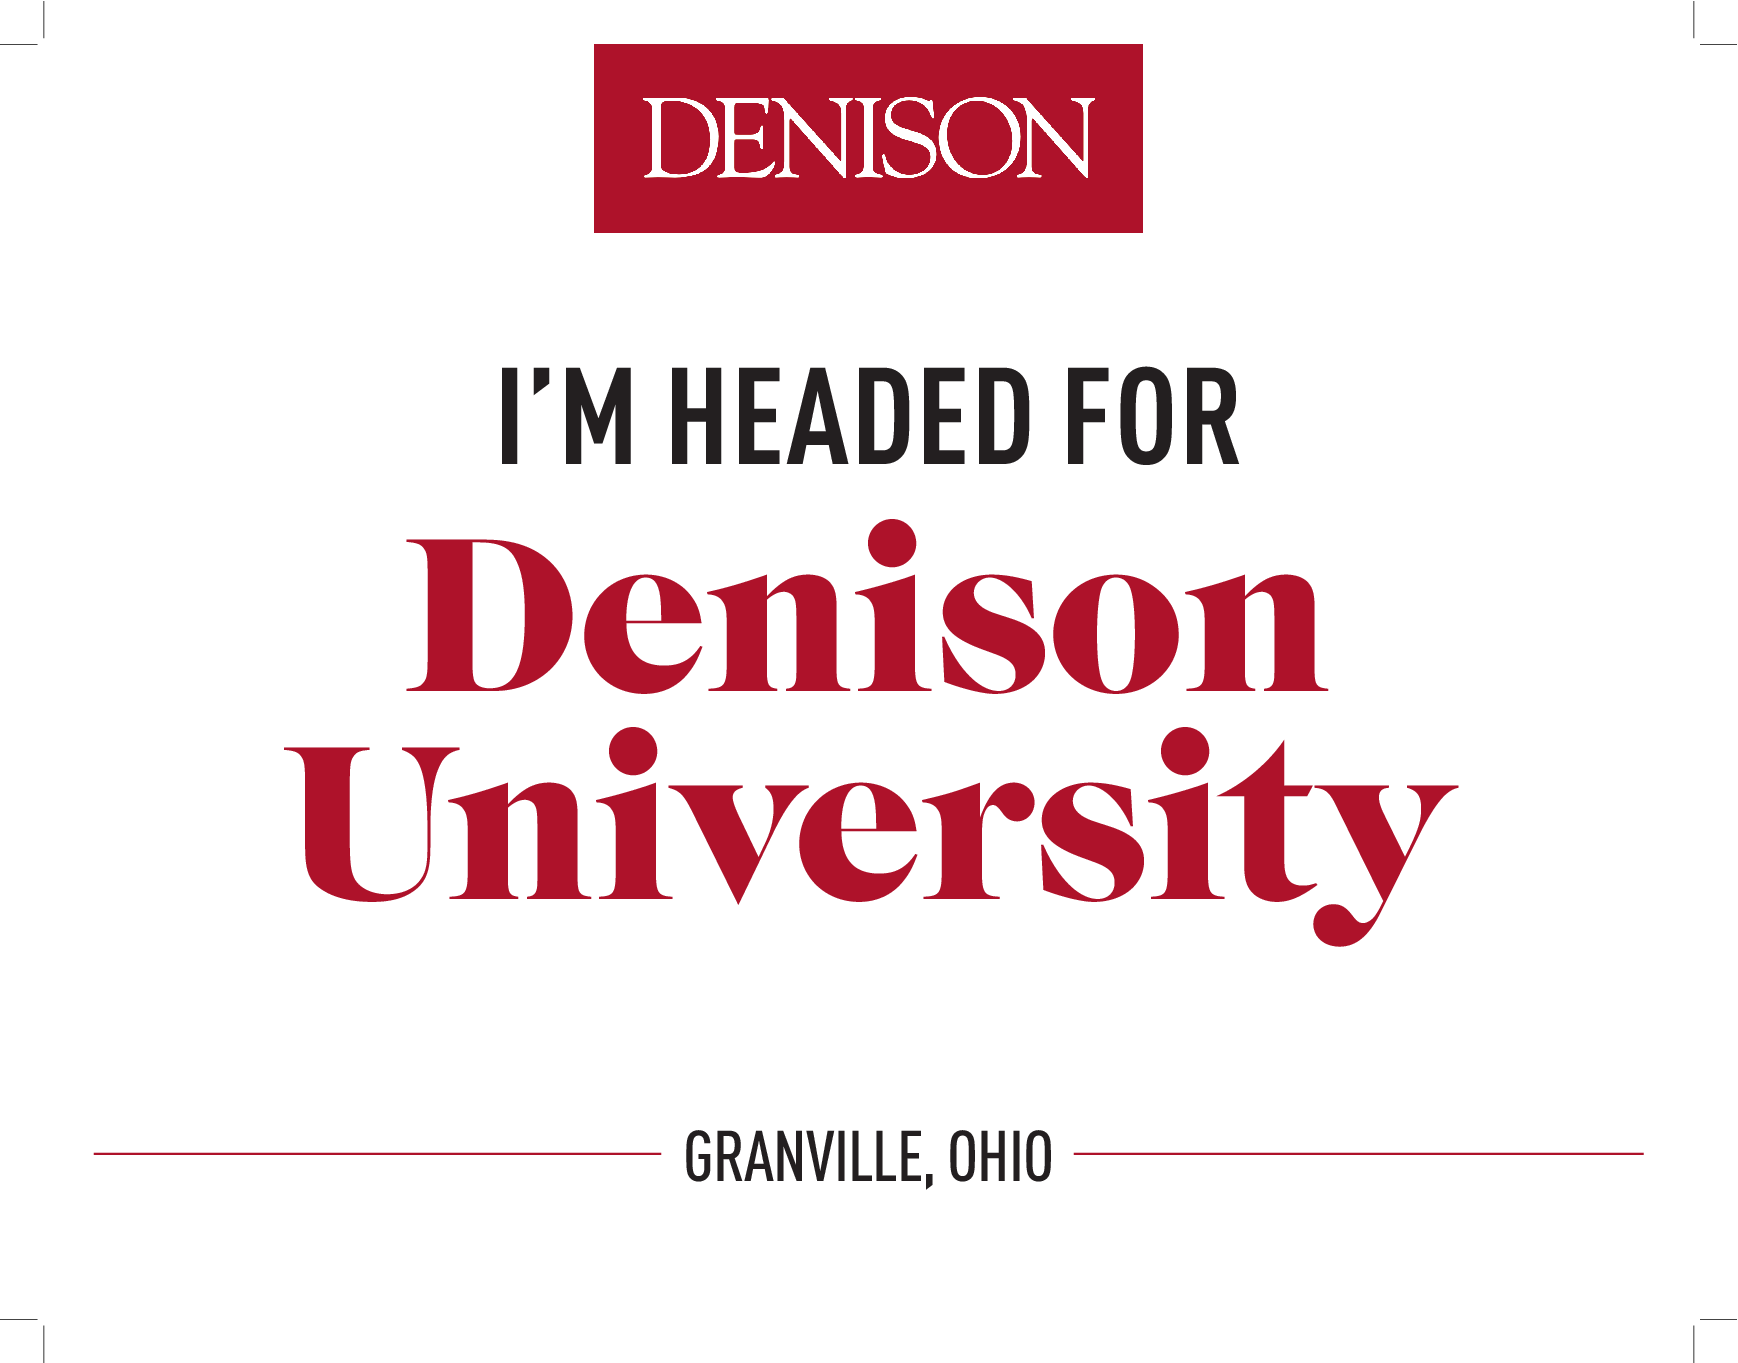 I'm Headed for Denison